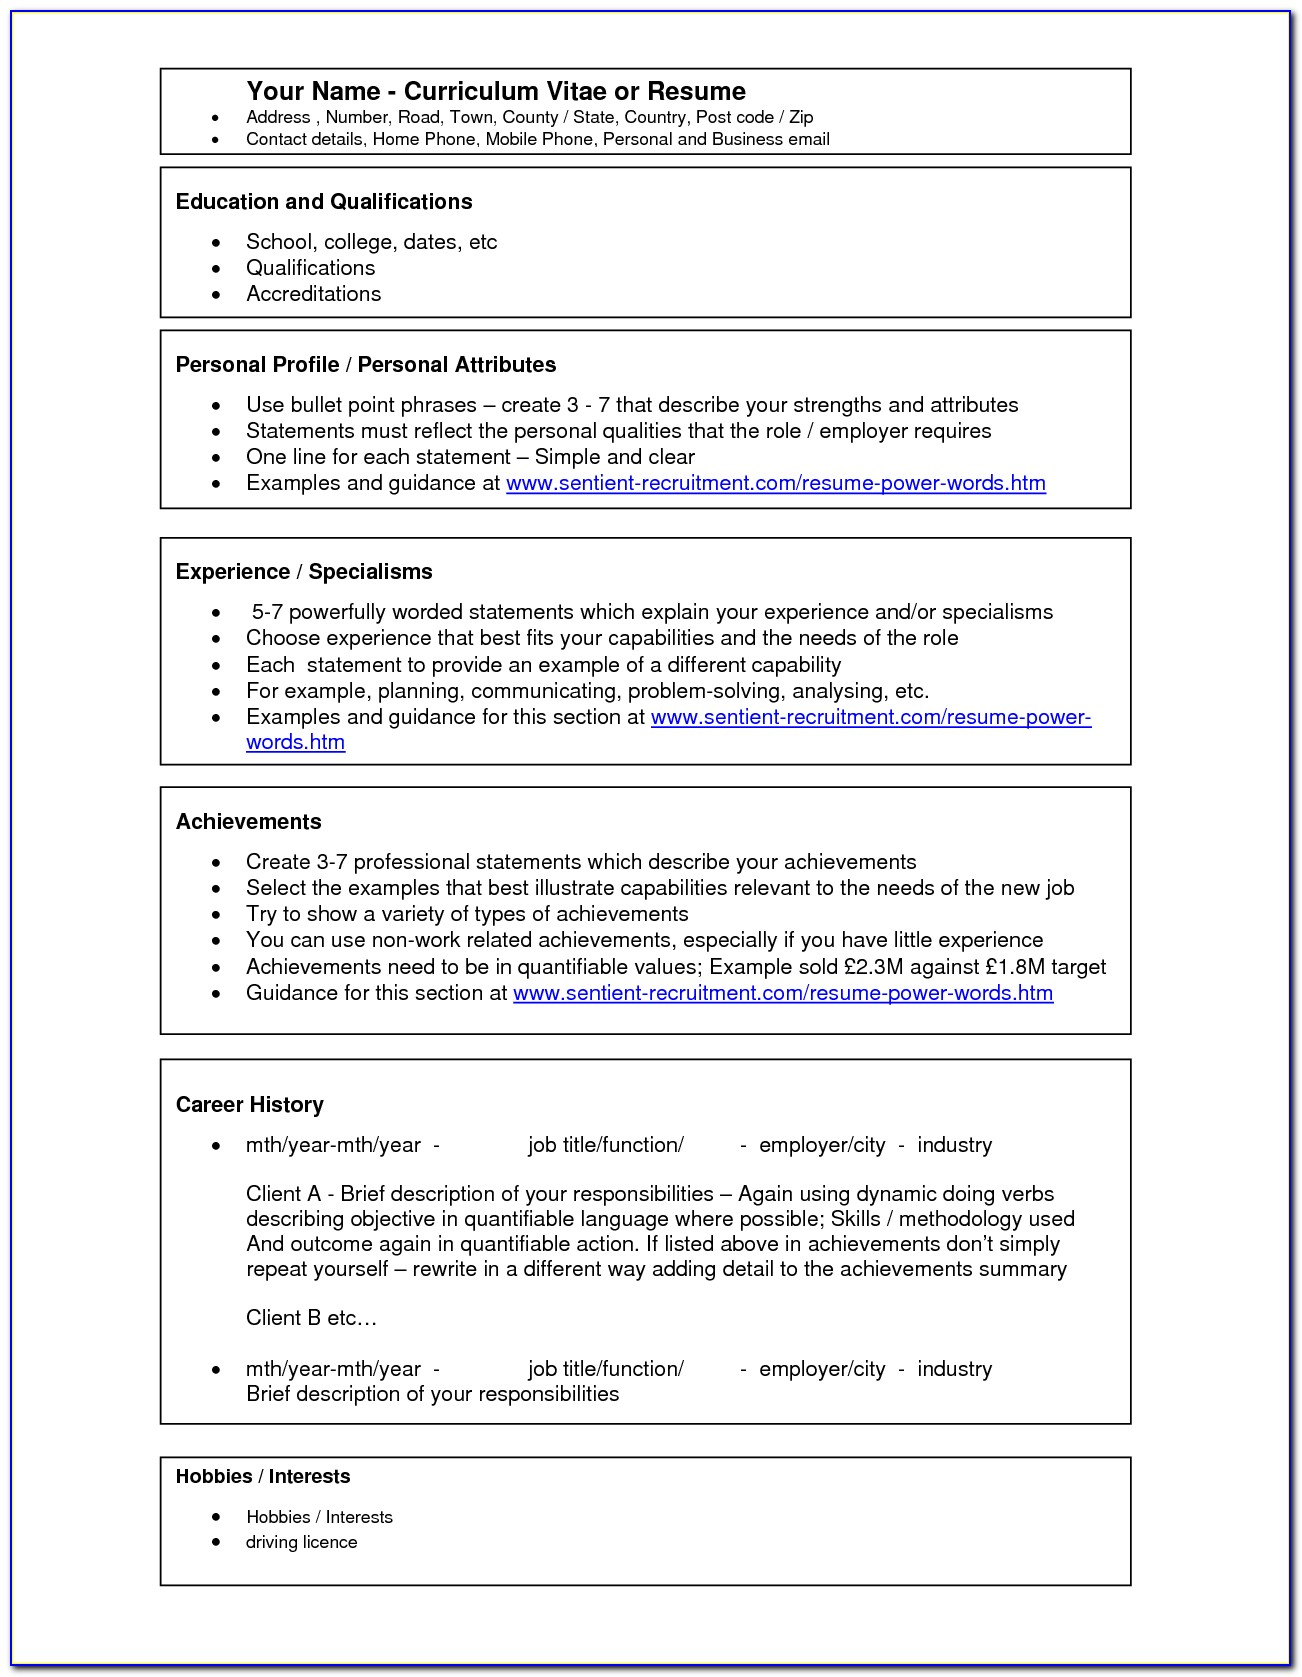 Free Resume Template Microsoft Word Download